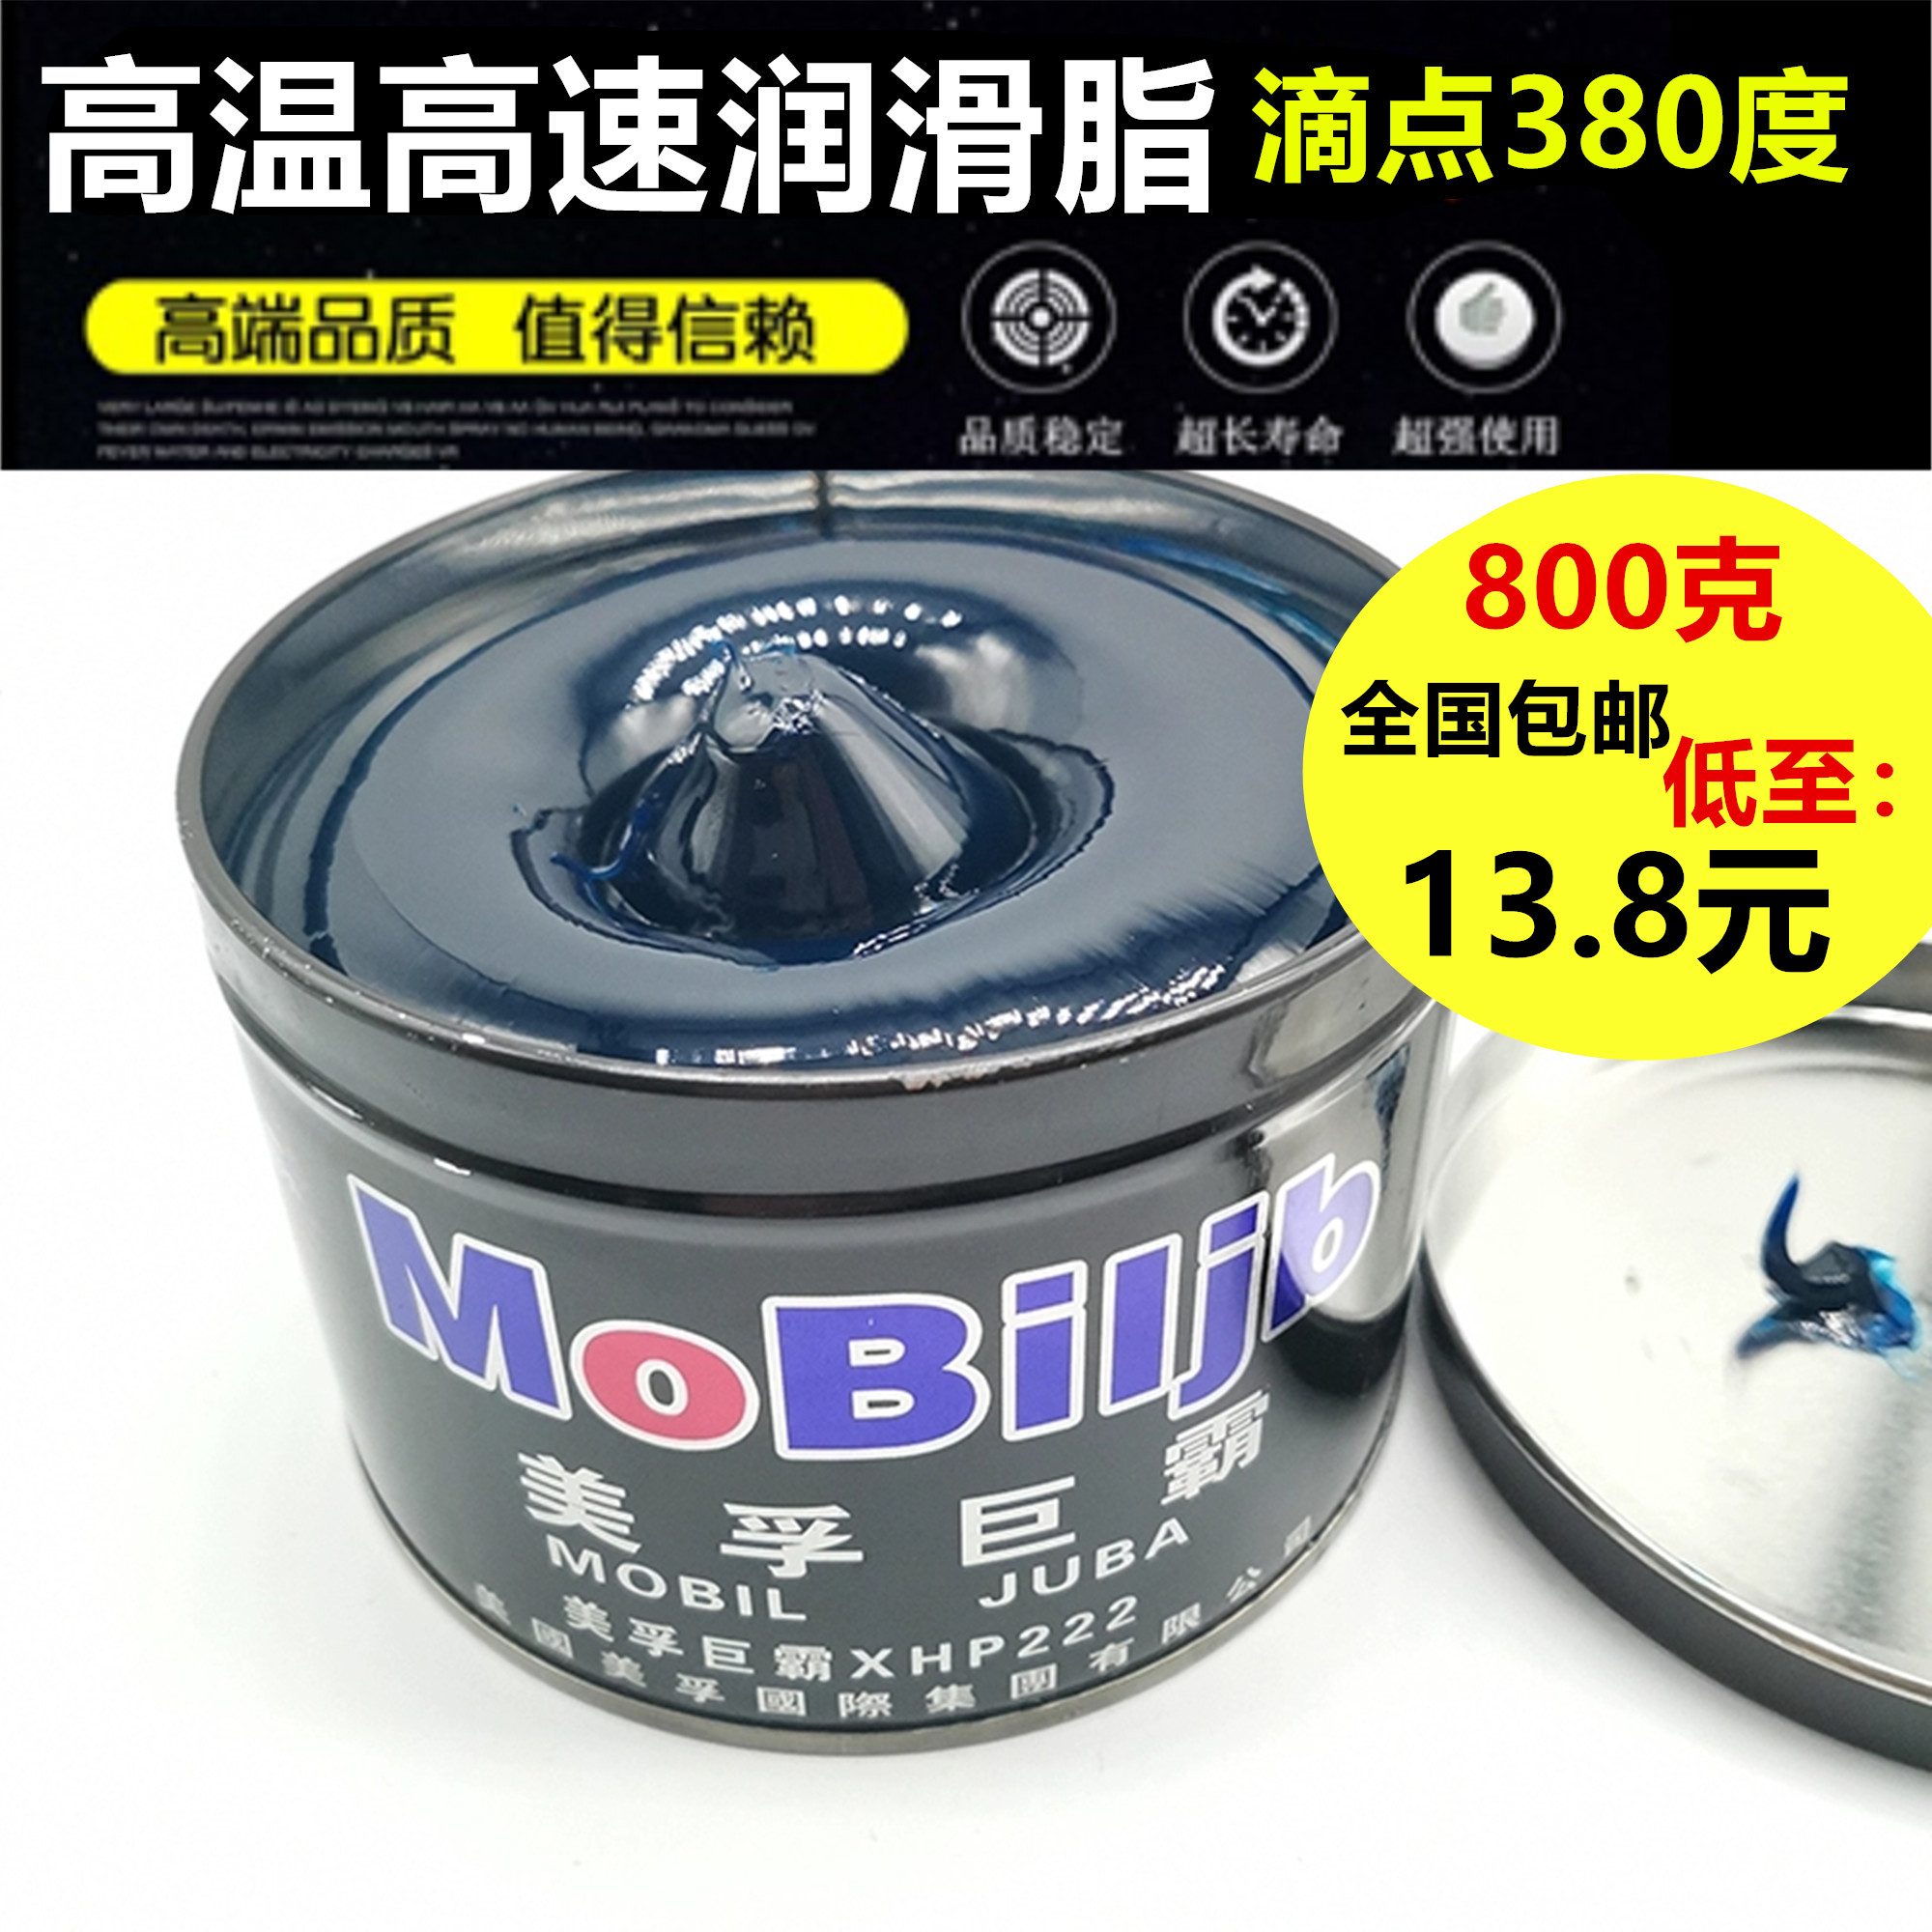 Motor hammer blue high temperature 222 grease industrial lubricant lithium-based grease high-speed bearing car butter